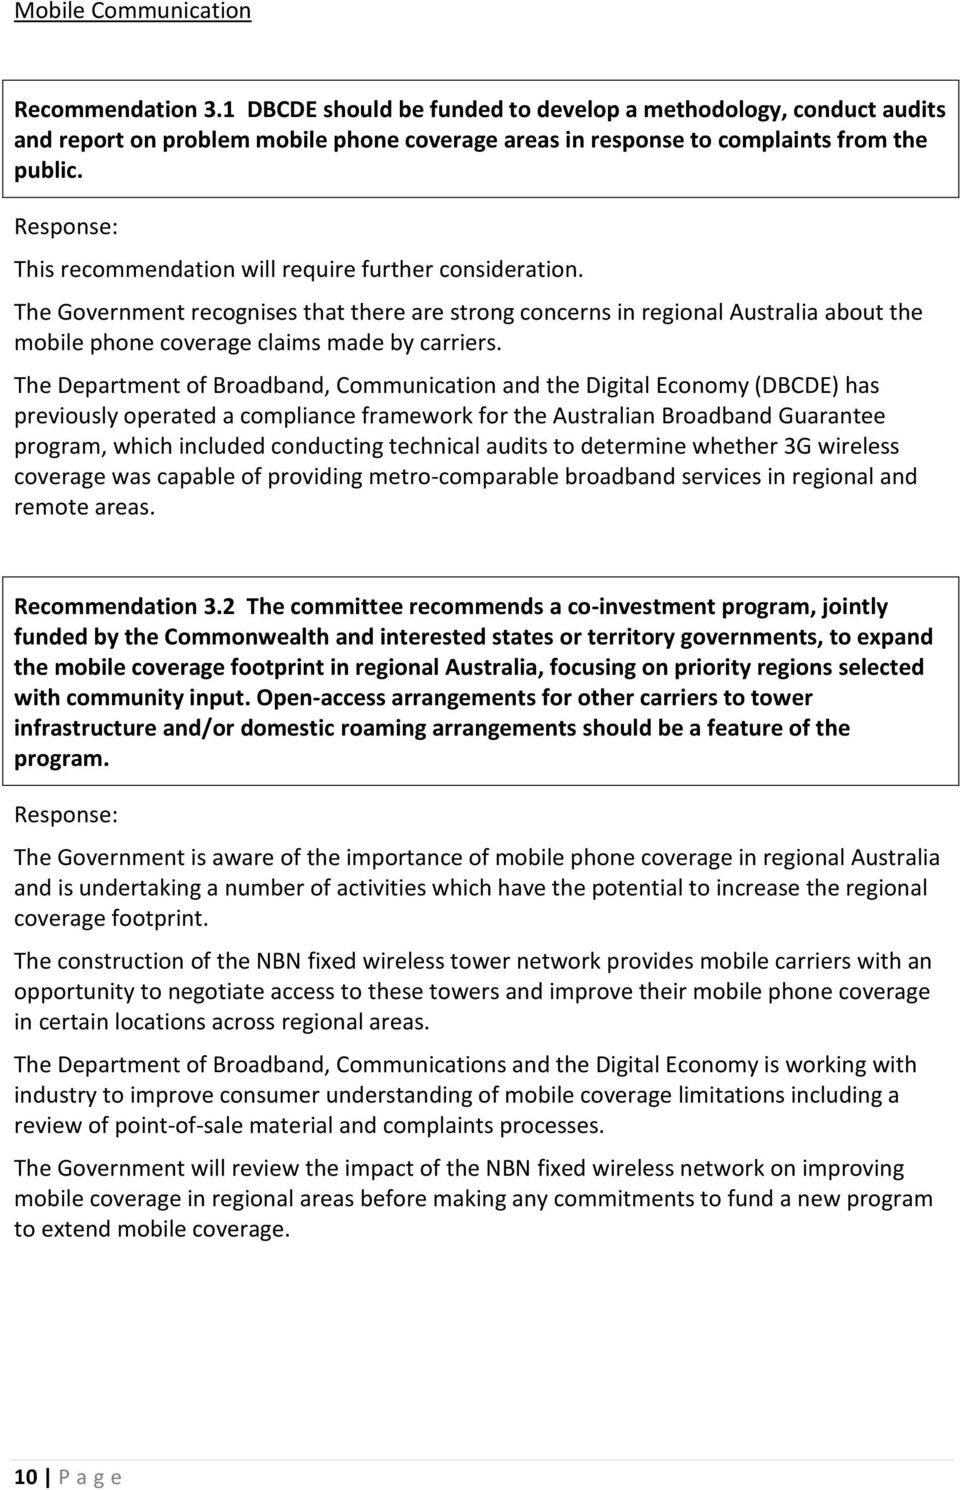 The Department of Broadband, Communication and the Digital Economy (DBCDE) has previously operated a compliance framework for the Australian Broadband Guarantee program, which included conducting